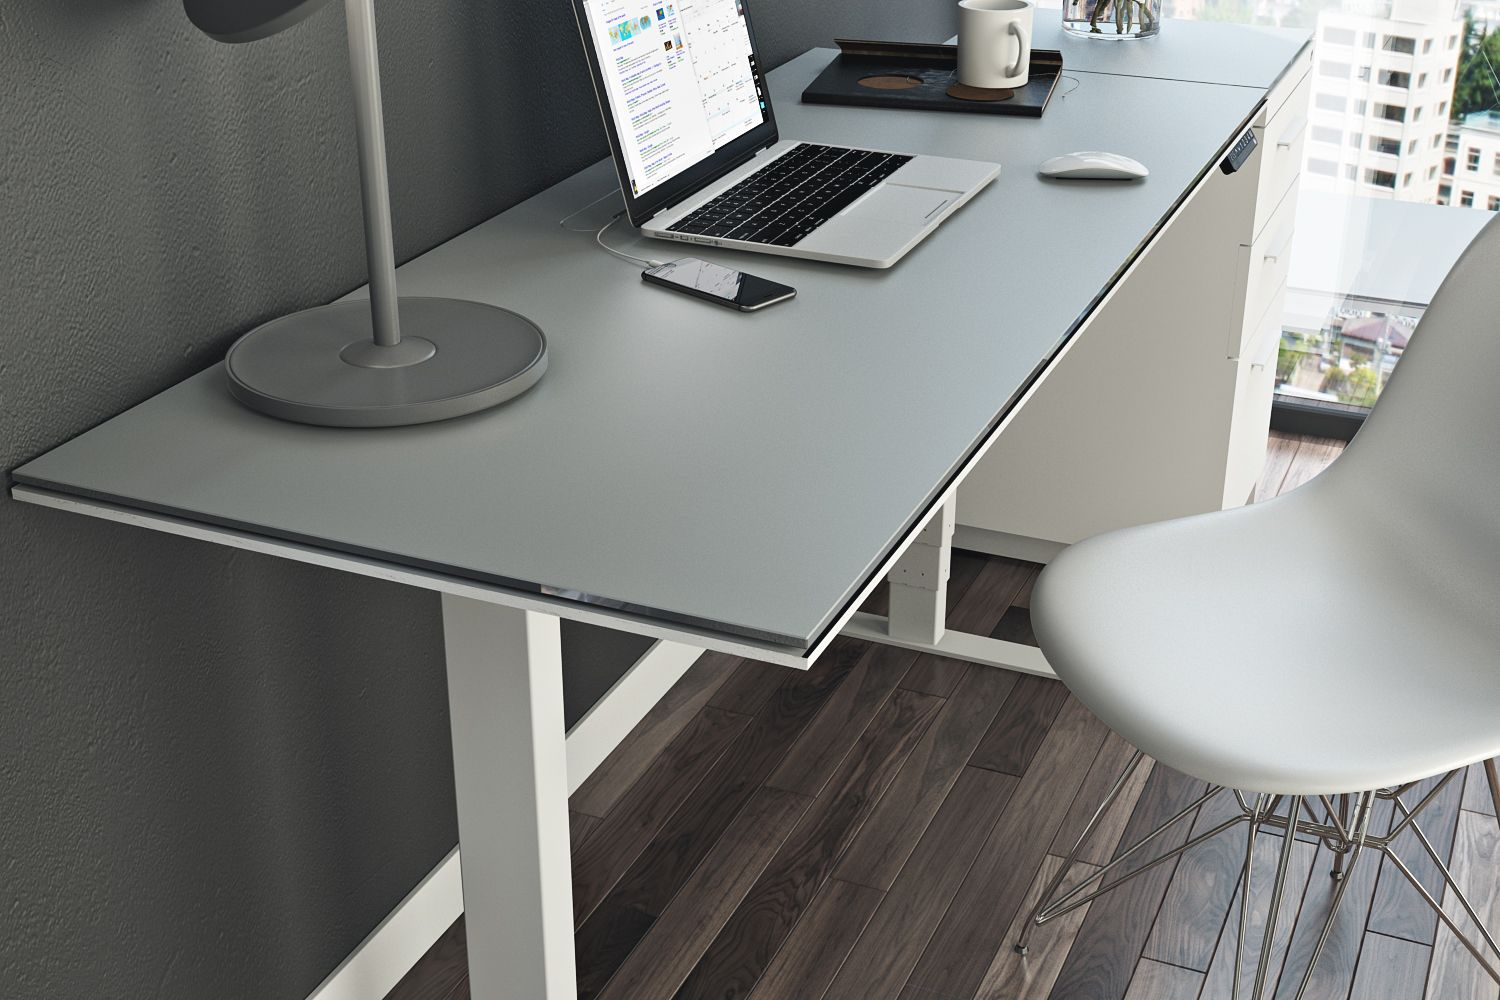 The Centro Lift Desk Lets You Work Sitting Down Or Standing Up Now Available In Stores Desk Diy Office Decor Bookcase Decor